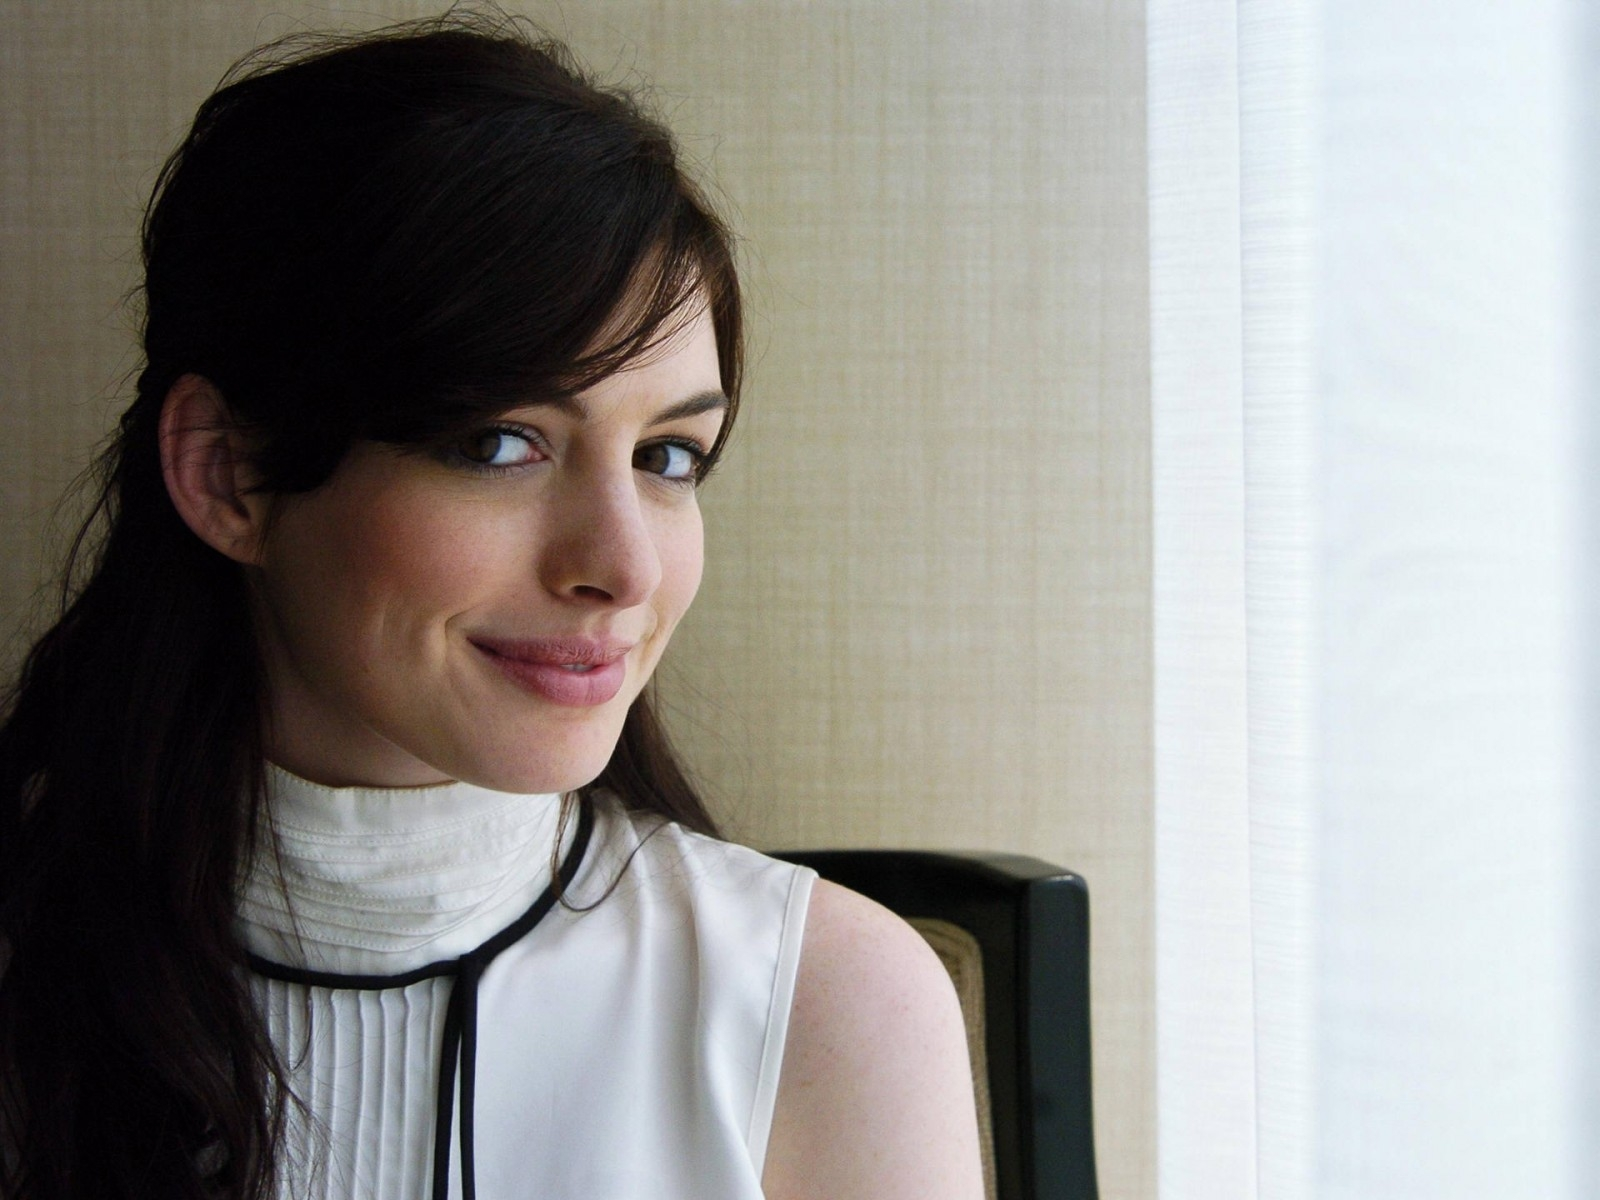 Wallpaper di Anne Hathaway - 13